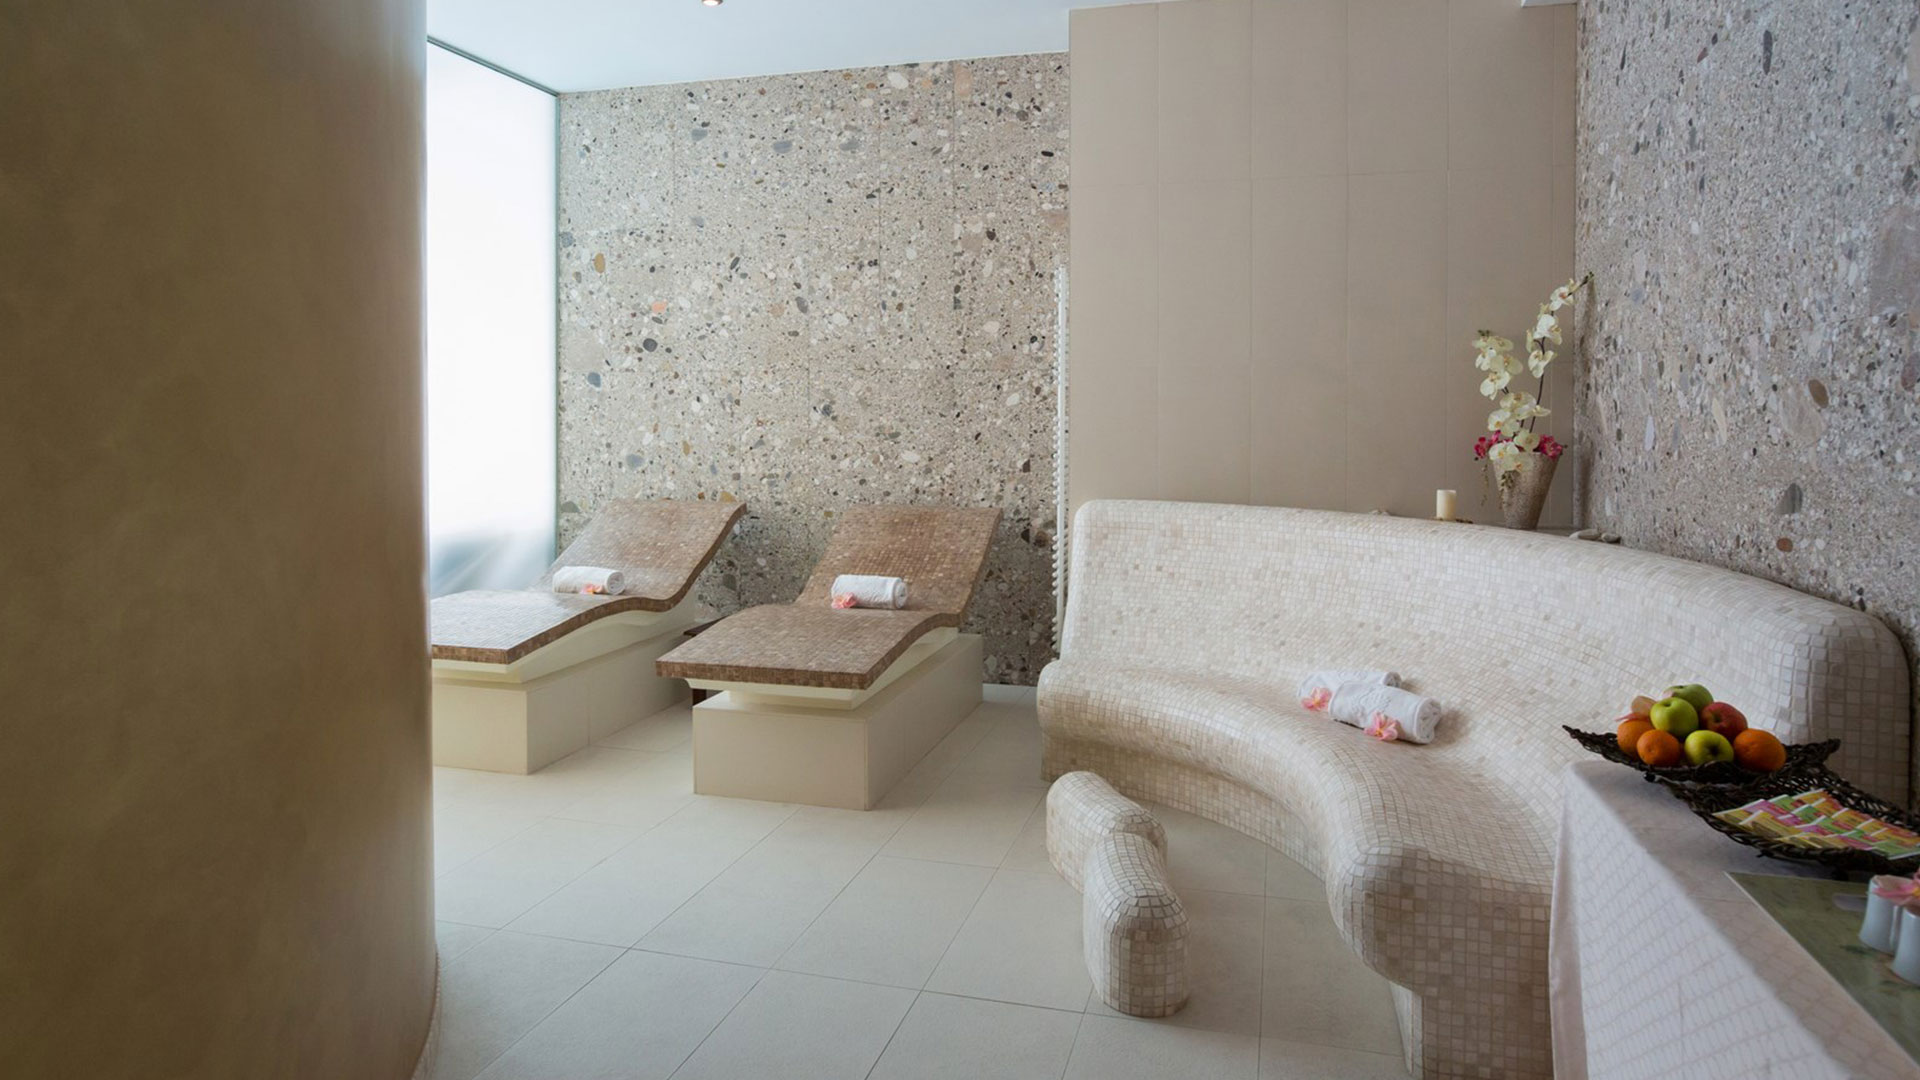 Royal Spa im Hotel Milenji